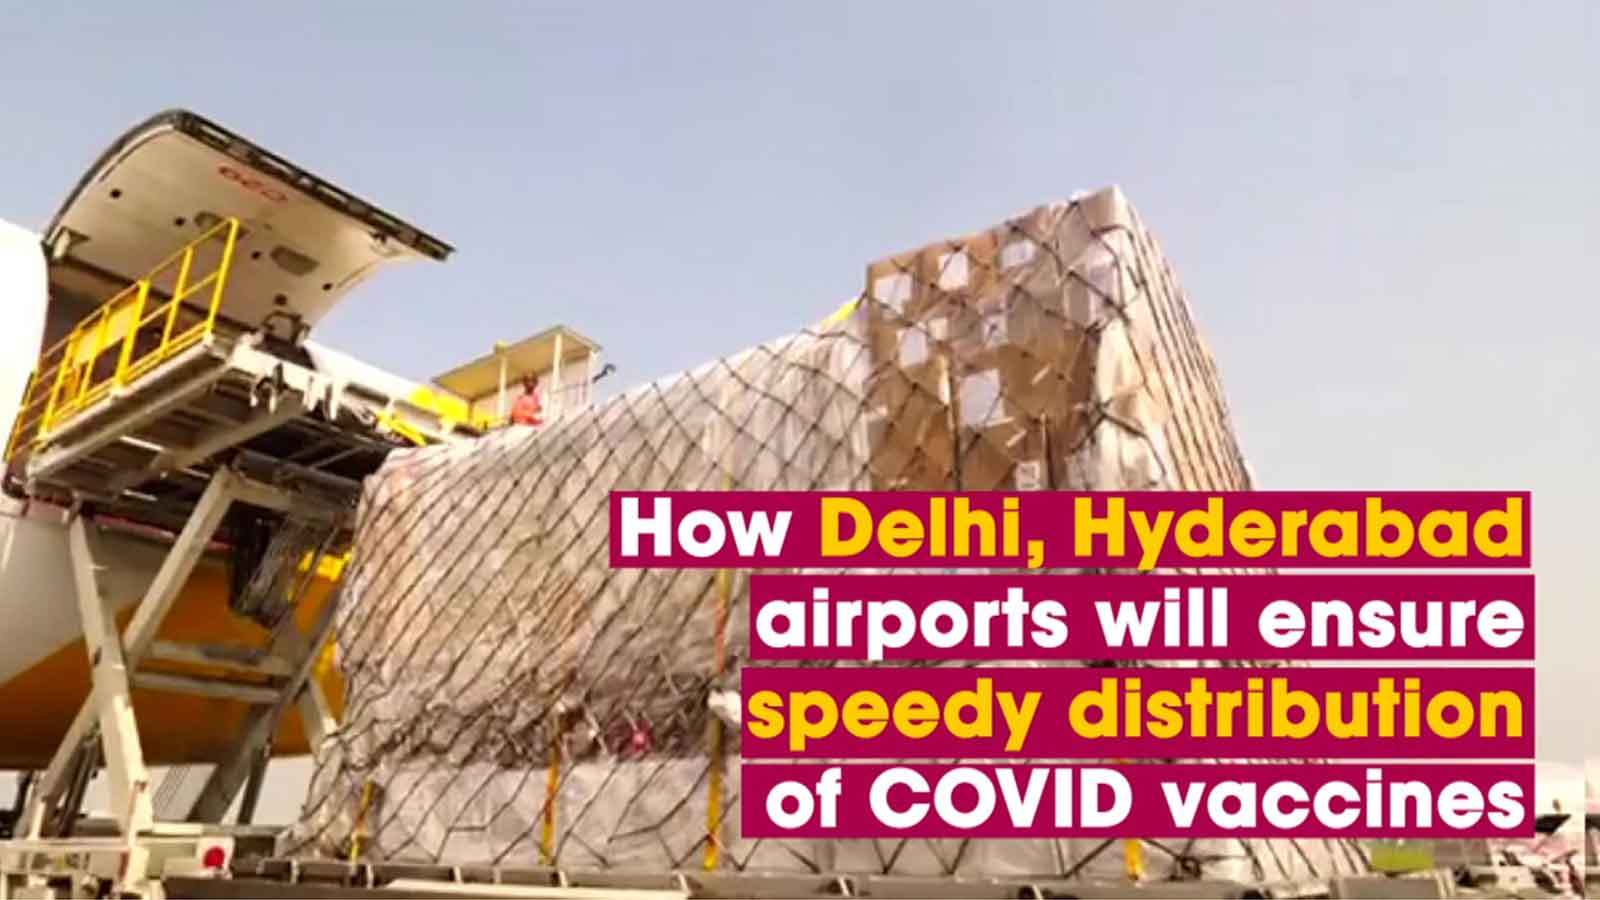 how-delhi-hyderabad-airports-are-preparing-for-transportation-of-covid-vaccine